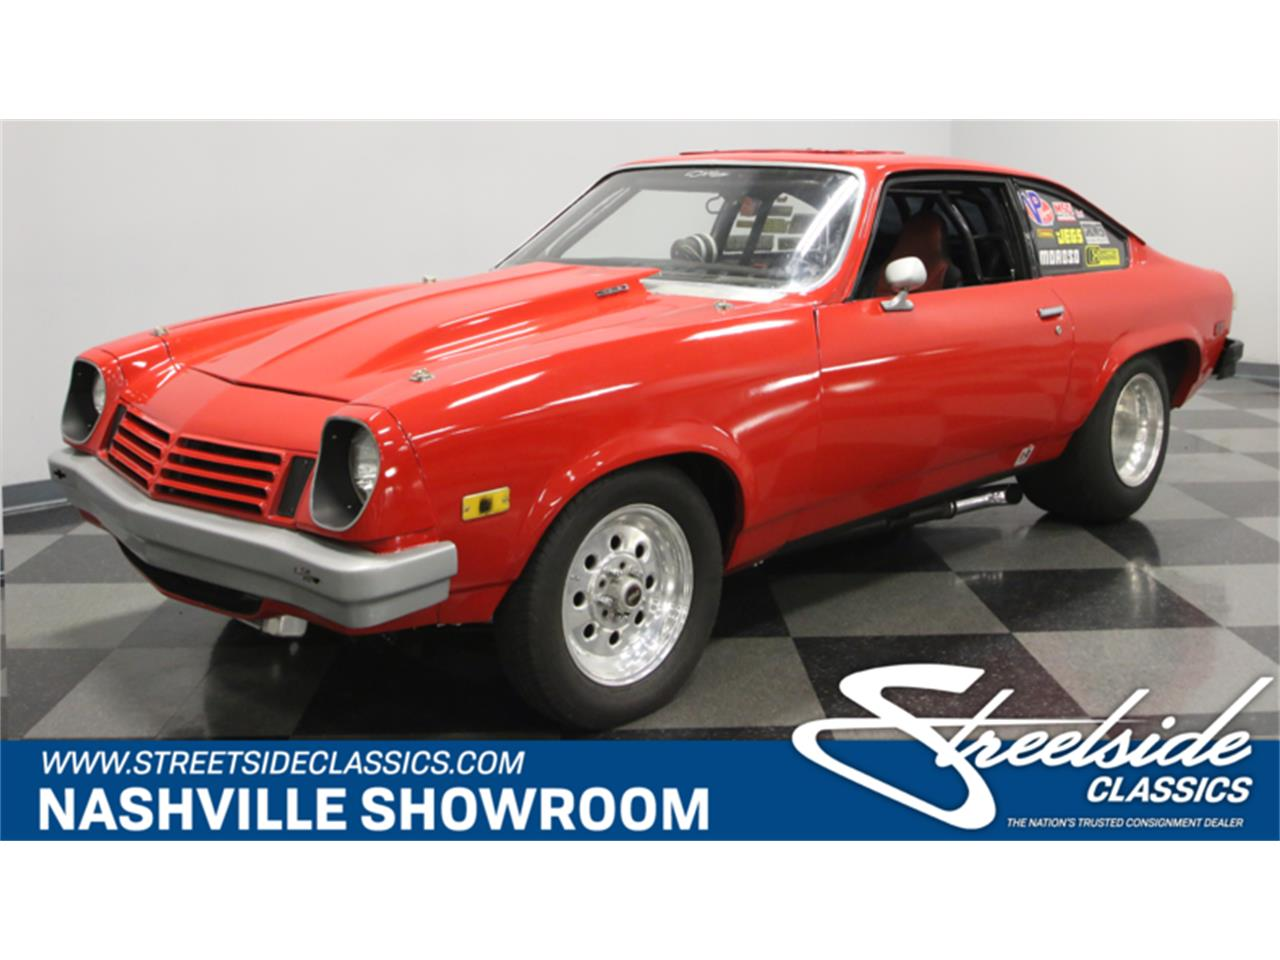 1977 Chevrolet Vega Wiring Diagram Detailed Schematics Trusted Diagrams 1974 Chevy Gt Fuse Box Free Car